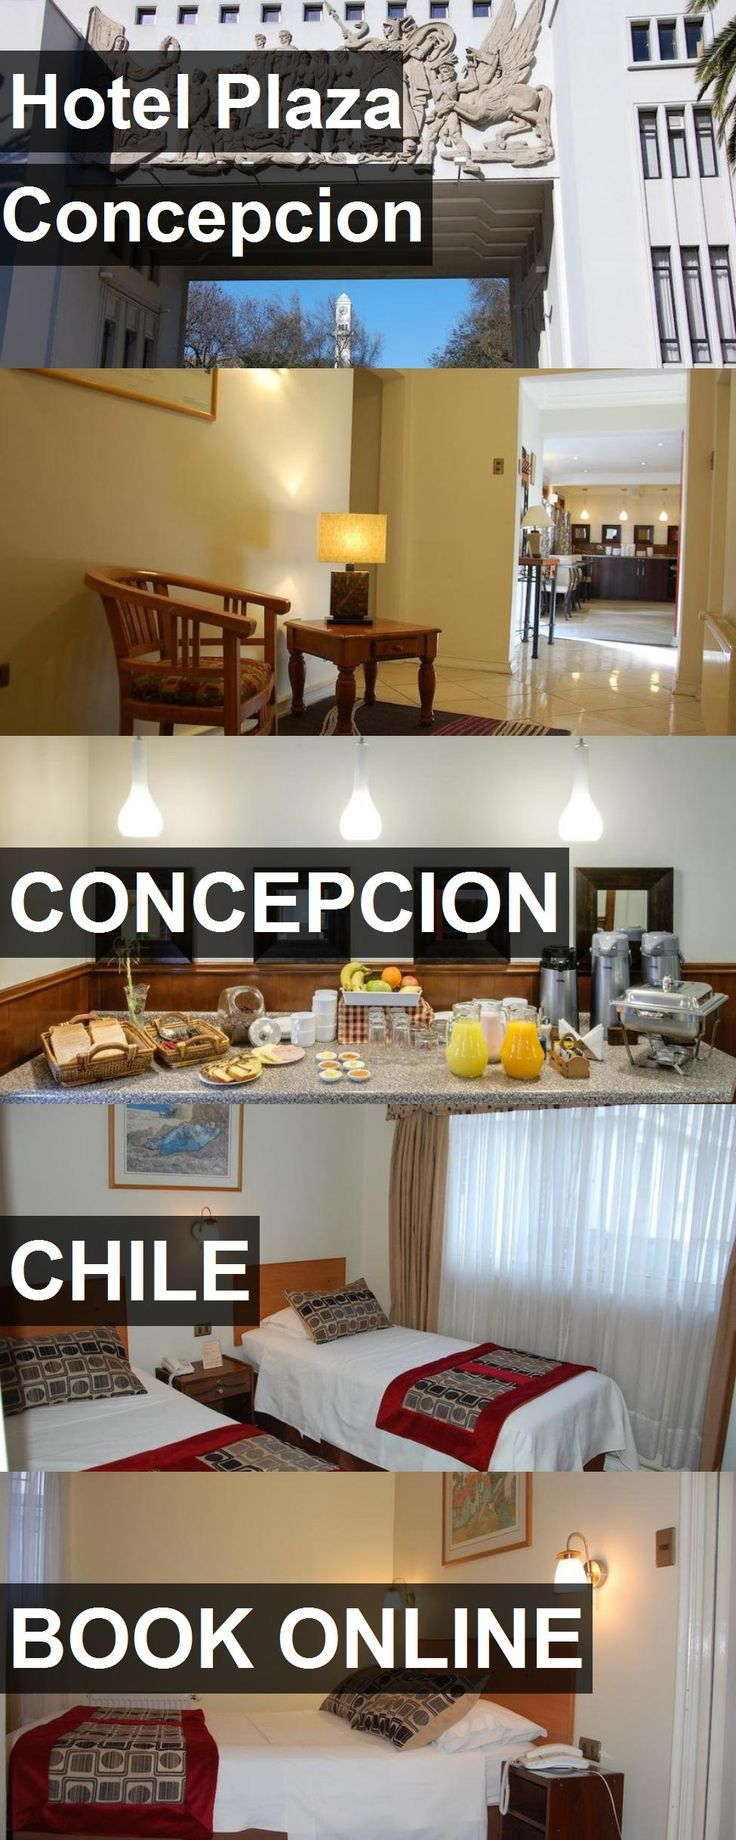 Hotel Plaza Concepcion in Concepcion, Chile. For more information, photos, reviews and best prices please follow the link. #Chile #Concepcion #travel #vacation #hotel